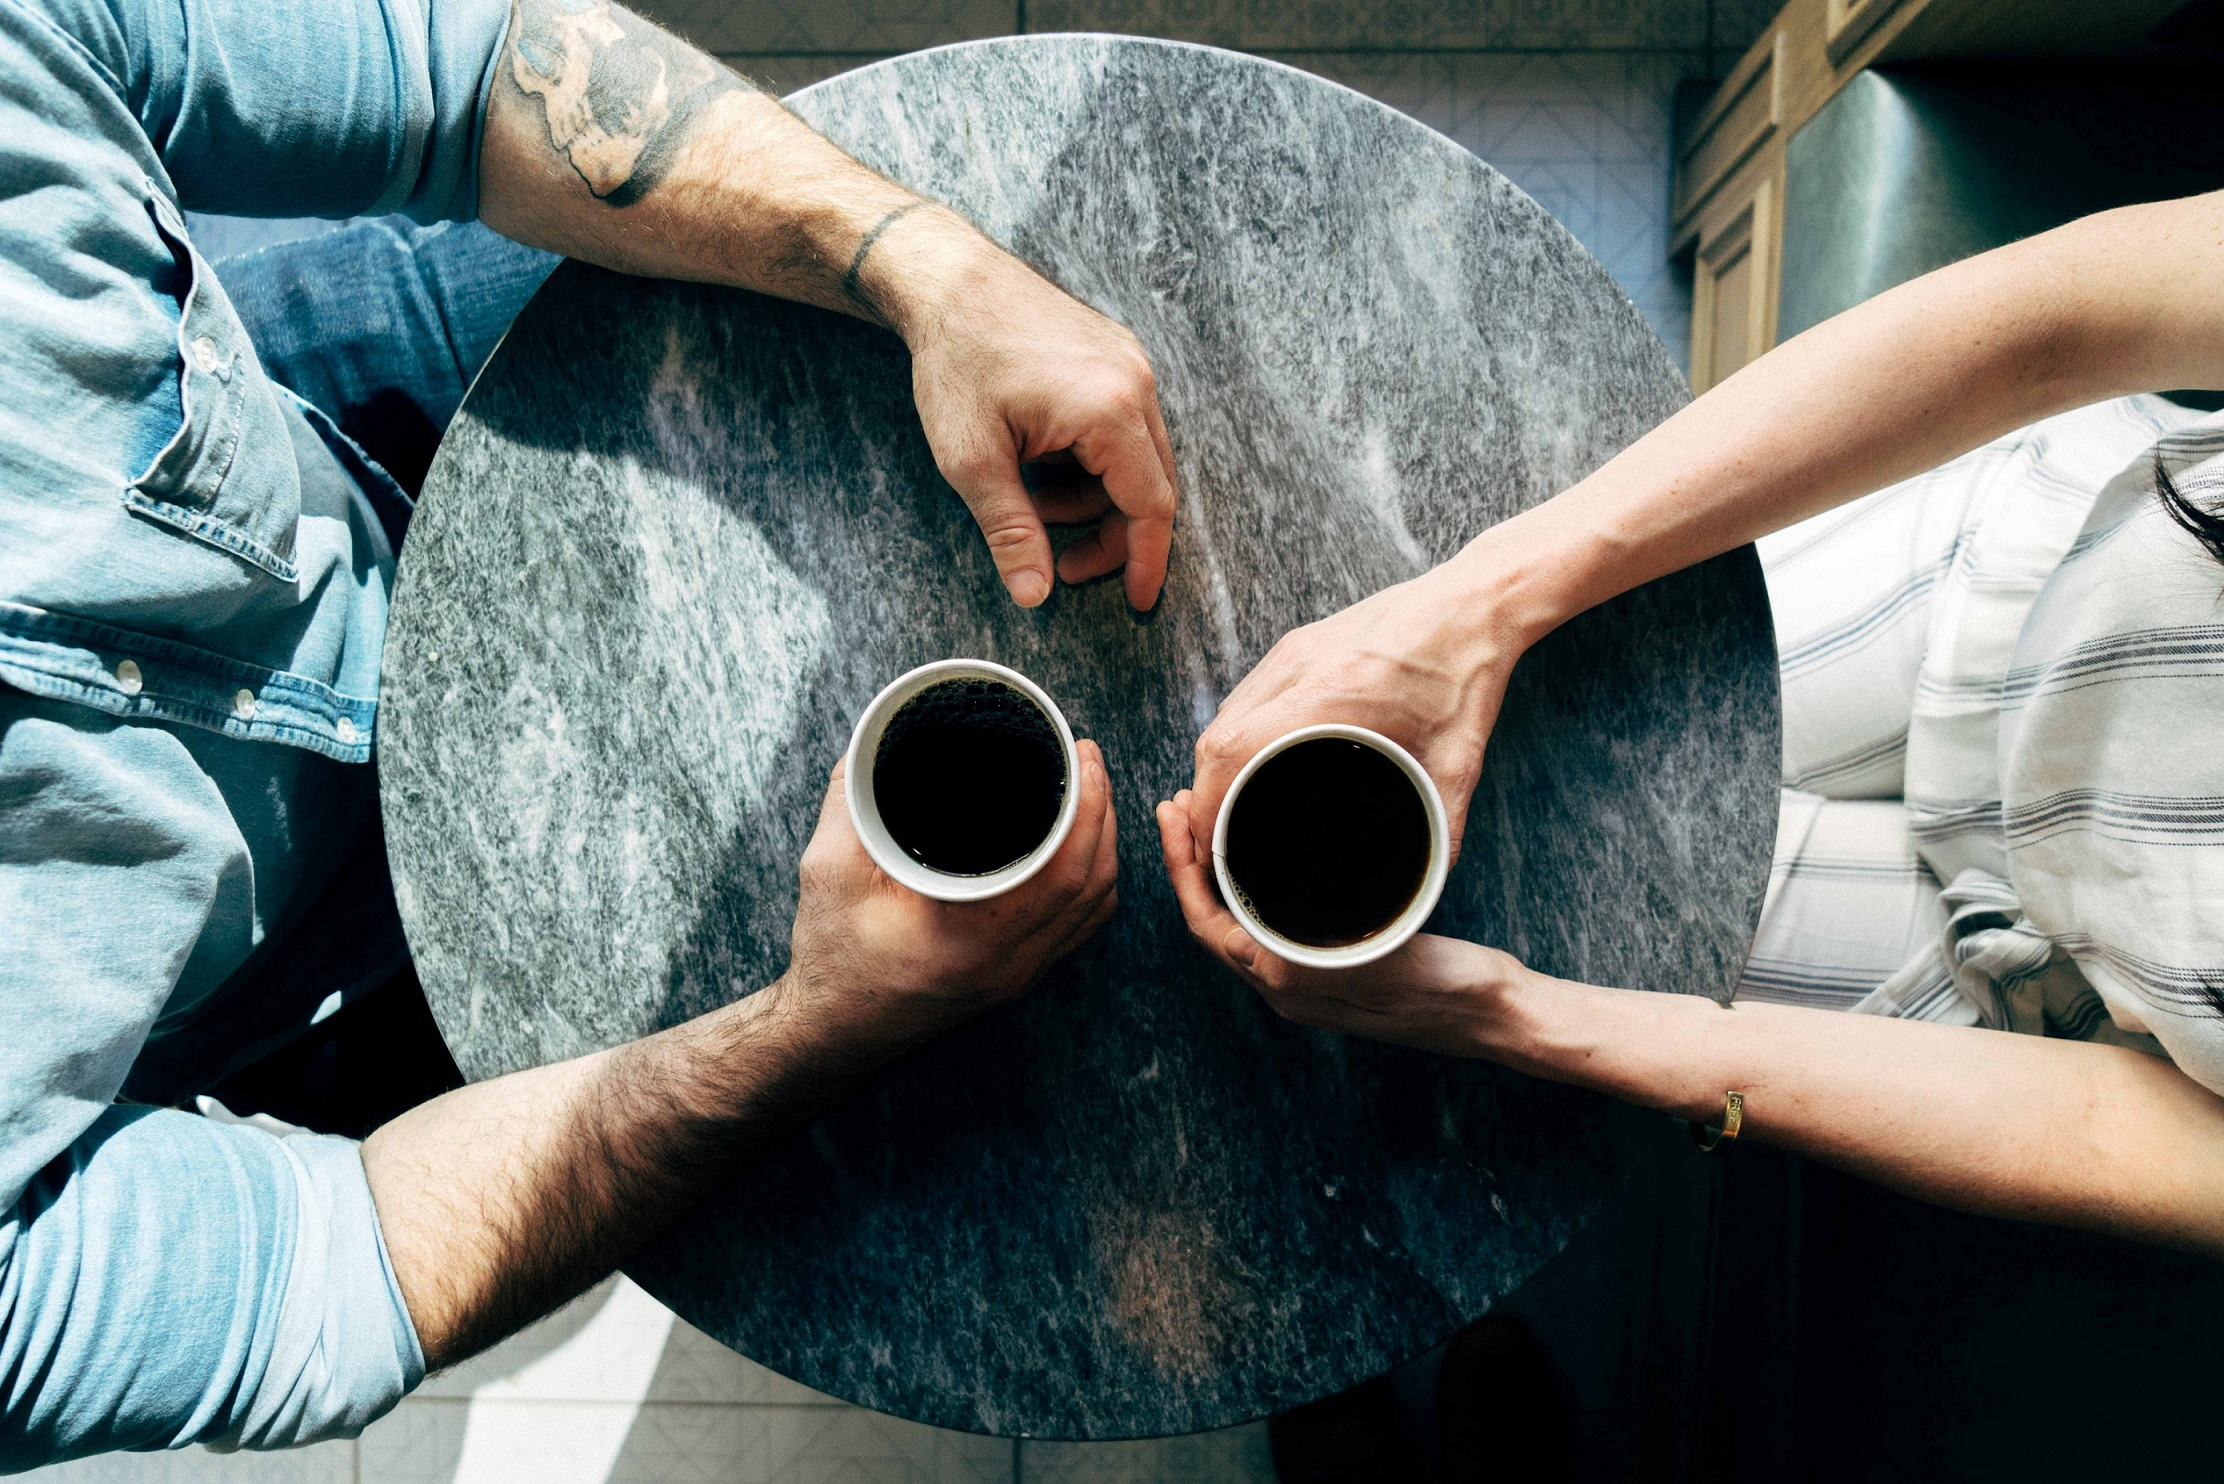 Above shot of woman and man holding coffee cups at a small marble table in a cafe